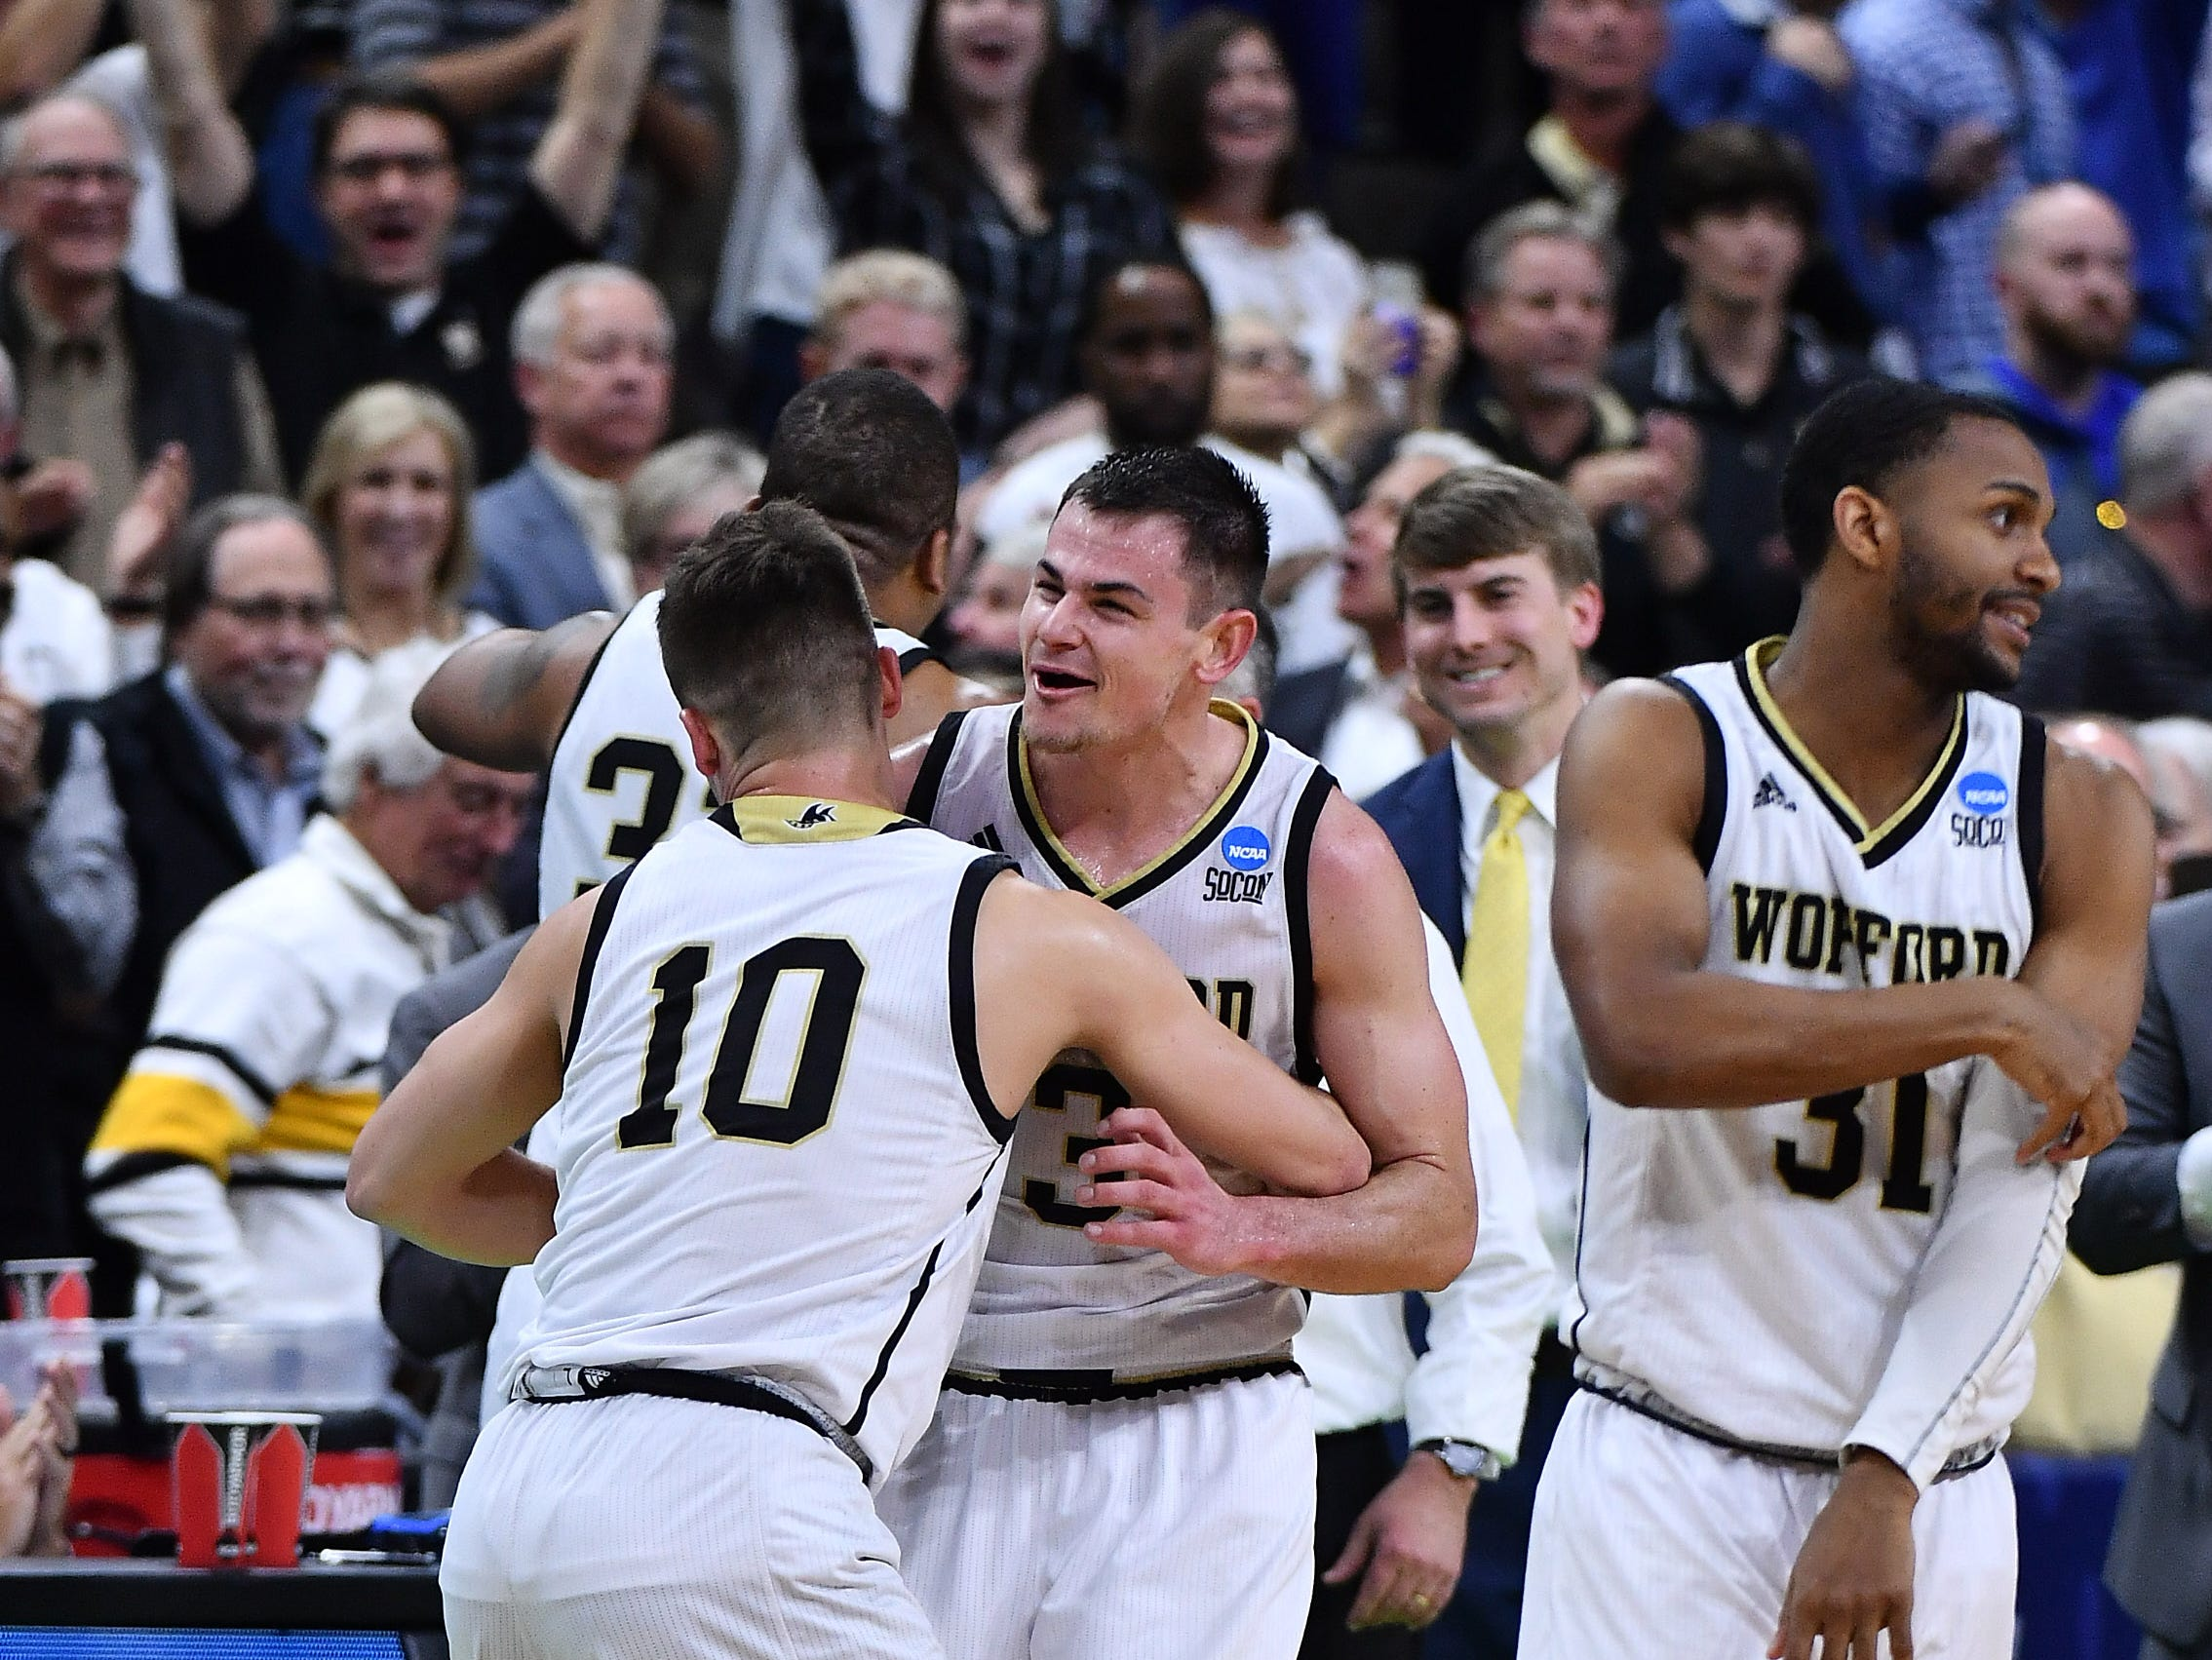 Mar 21, 2019; Jacksonville, FL, USA; Wofford Terriers guard Fletcher Magee (3) celebrates with teammates after defeating the Seton Hall Pirates in the first round of the 2019 NCAA Tournament at Jacksonville Veterans Memorial Arena. Mandatory Credit: John David Mercer-USA TODAY Sports